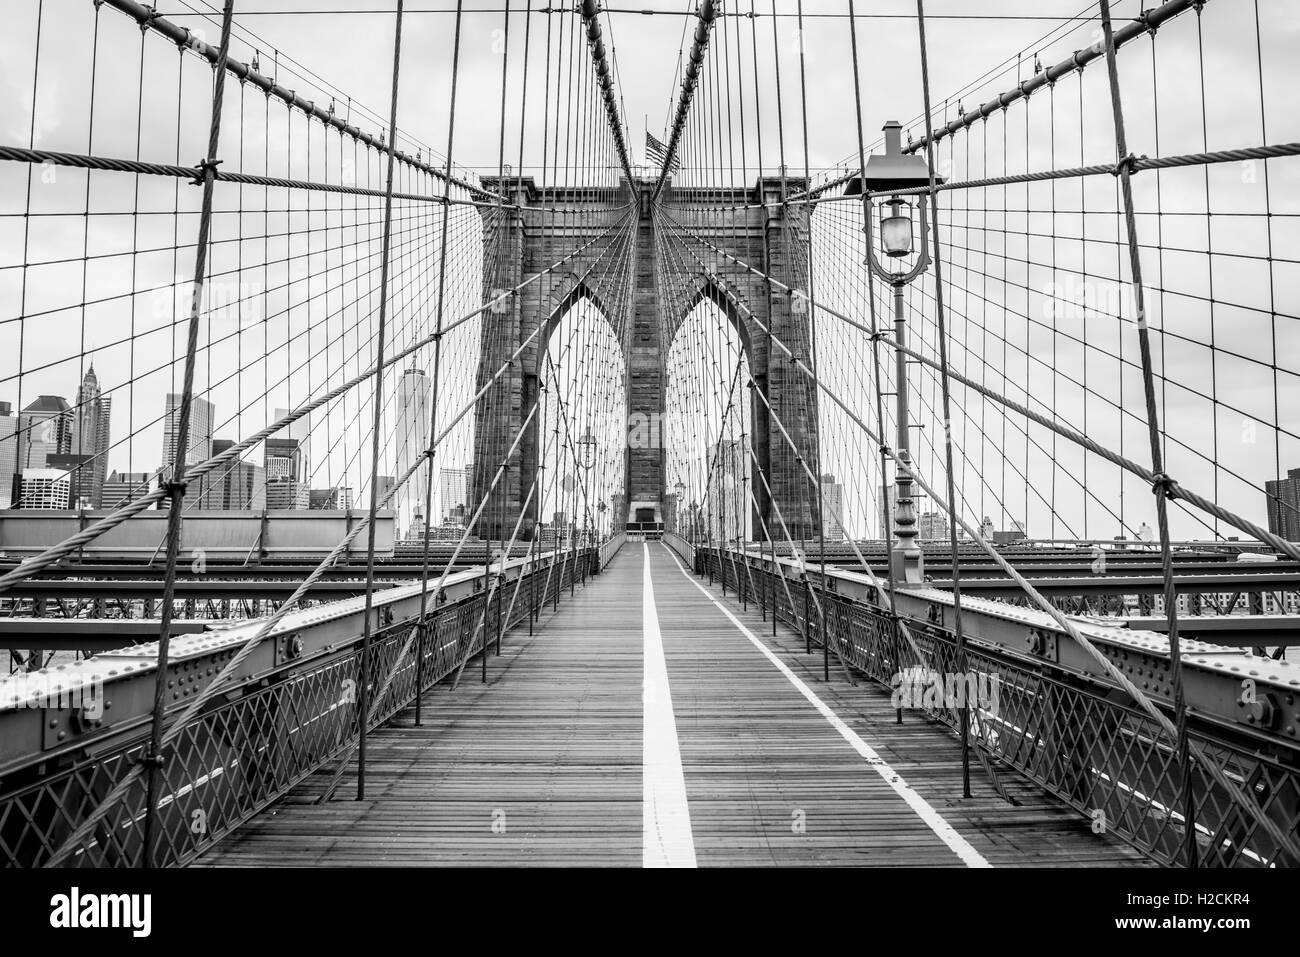 Pont de Manhattan, New York. Architecture noir et blanc et la photographie historique. La photographie de voyage Photo Stock